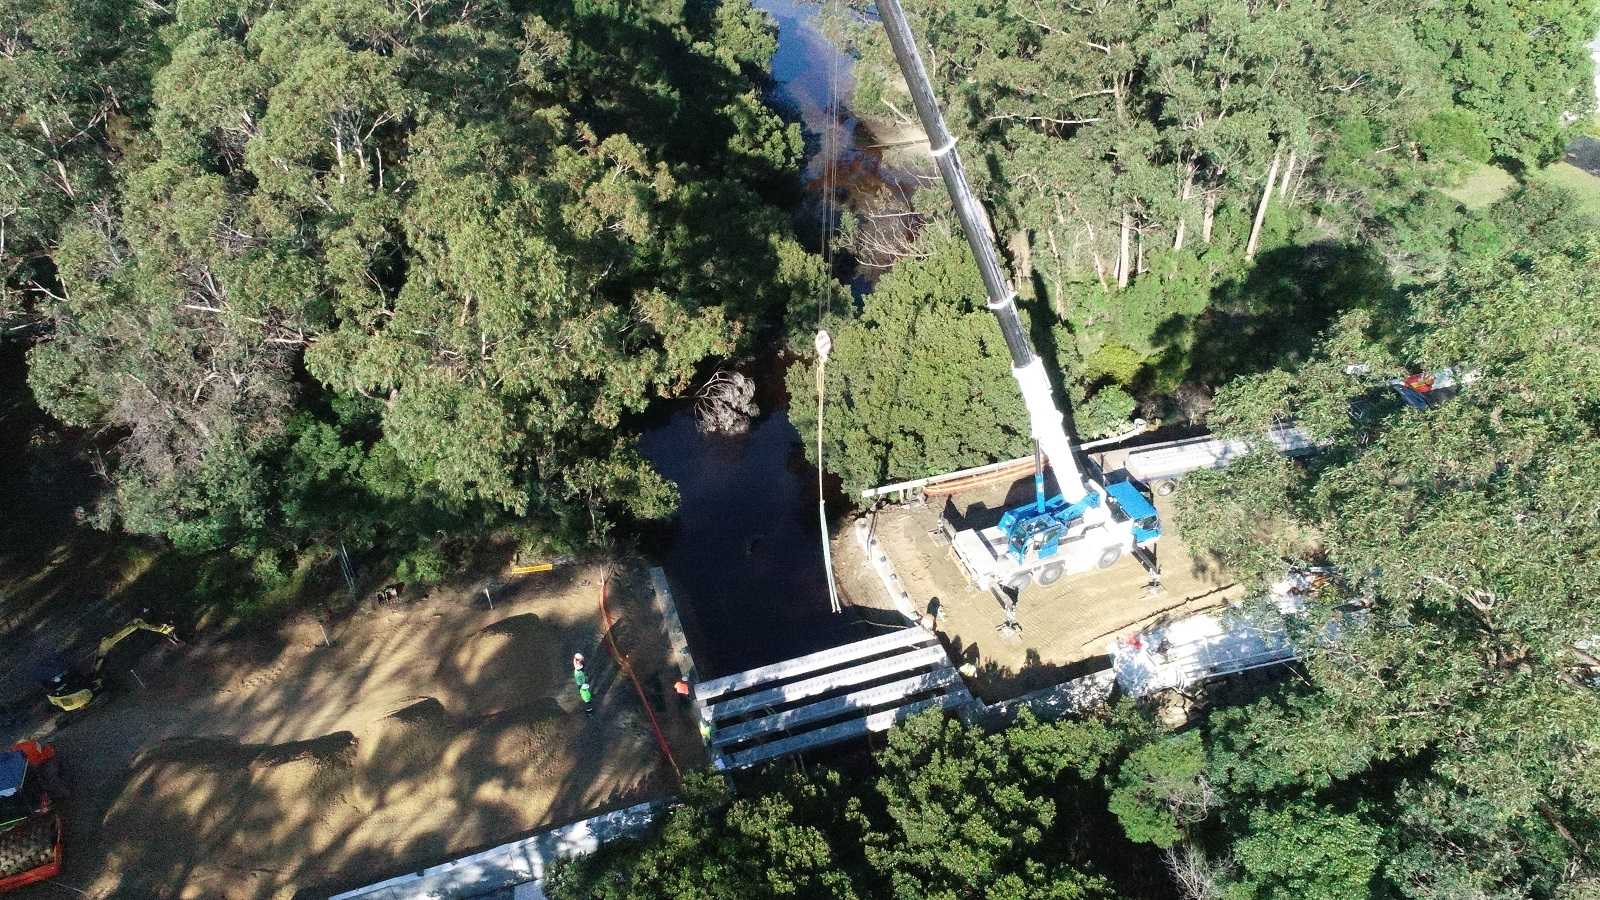 A crane truck lowers huge beams across a creek joining two sections of road.